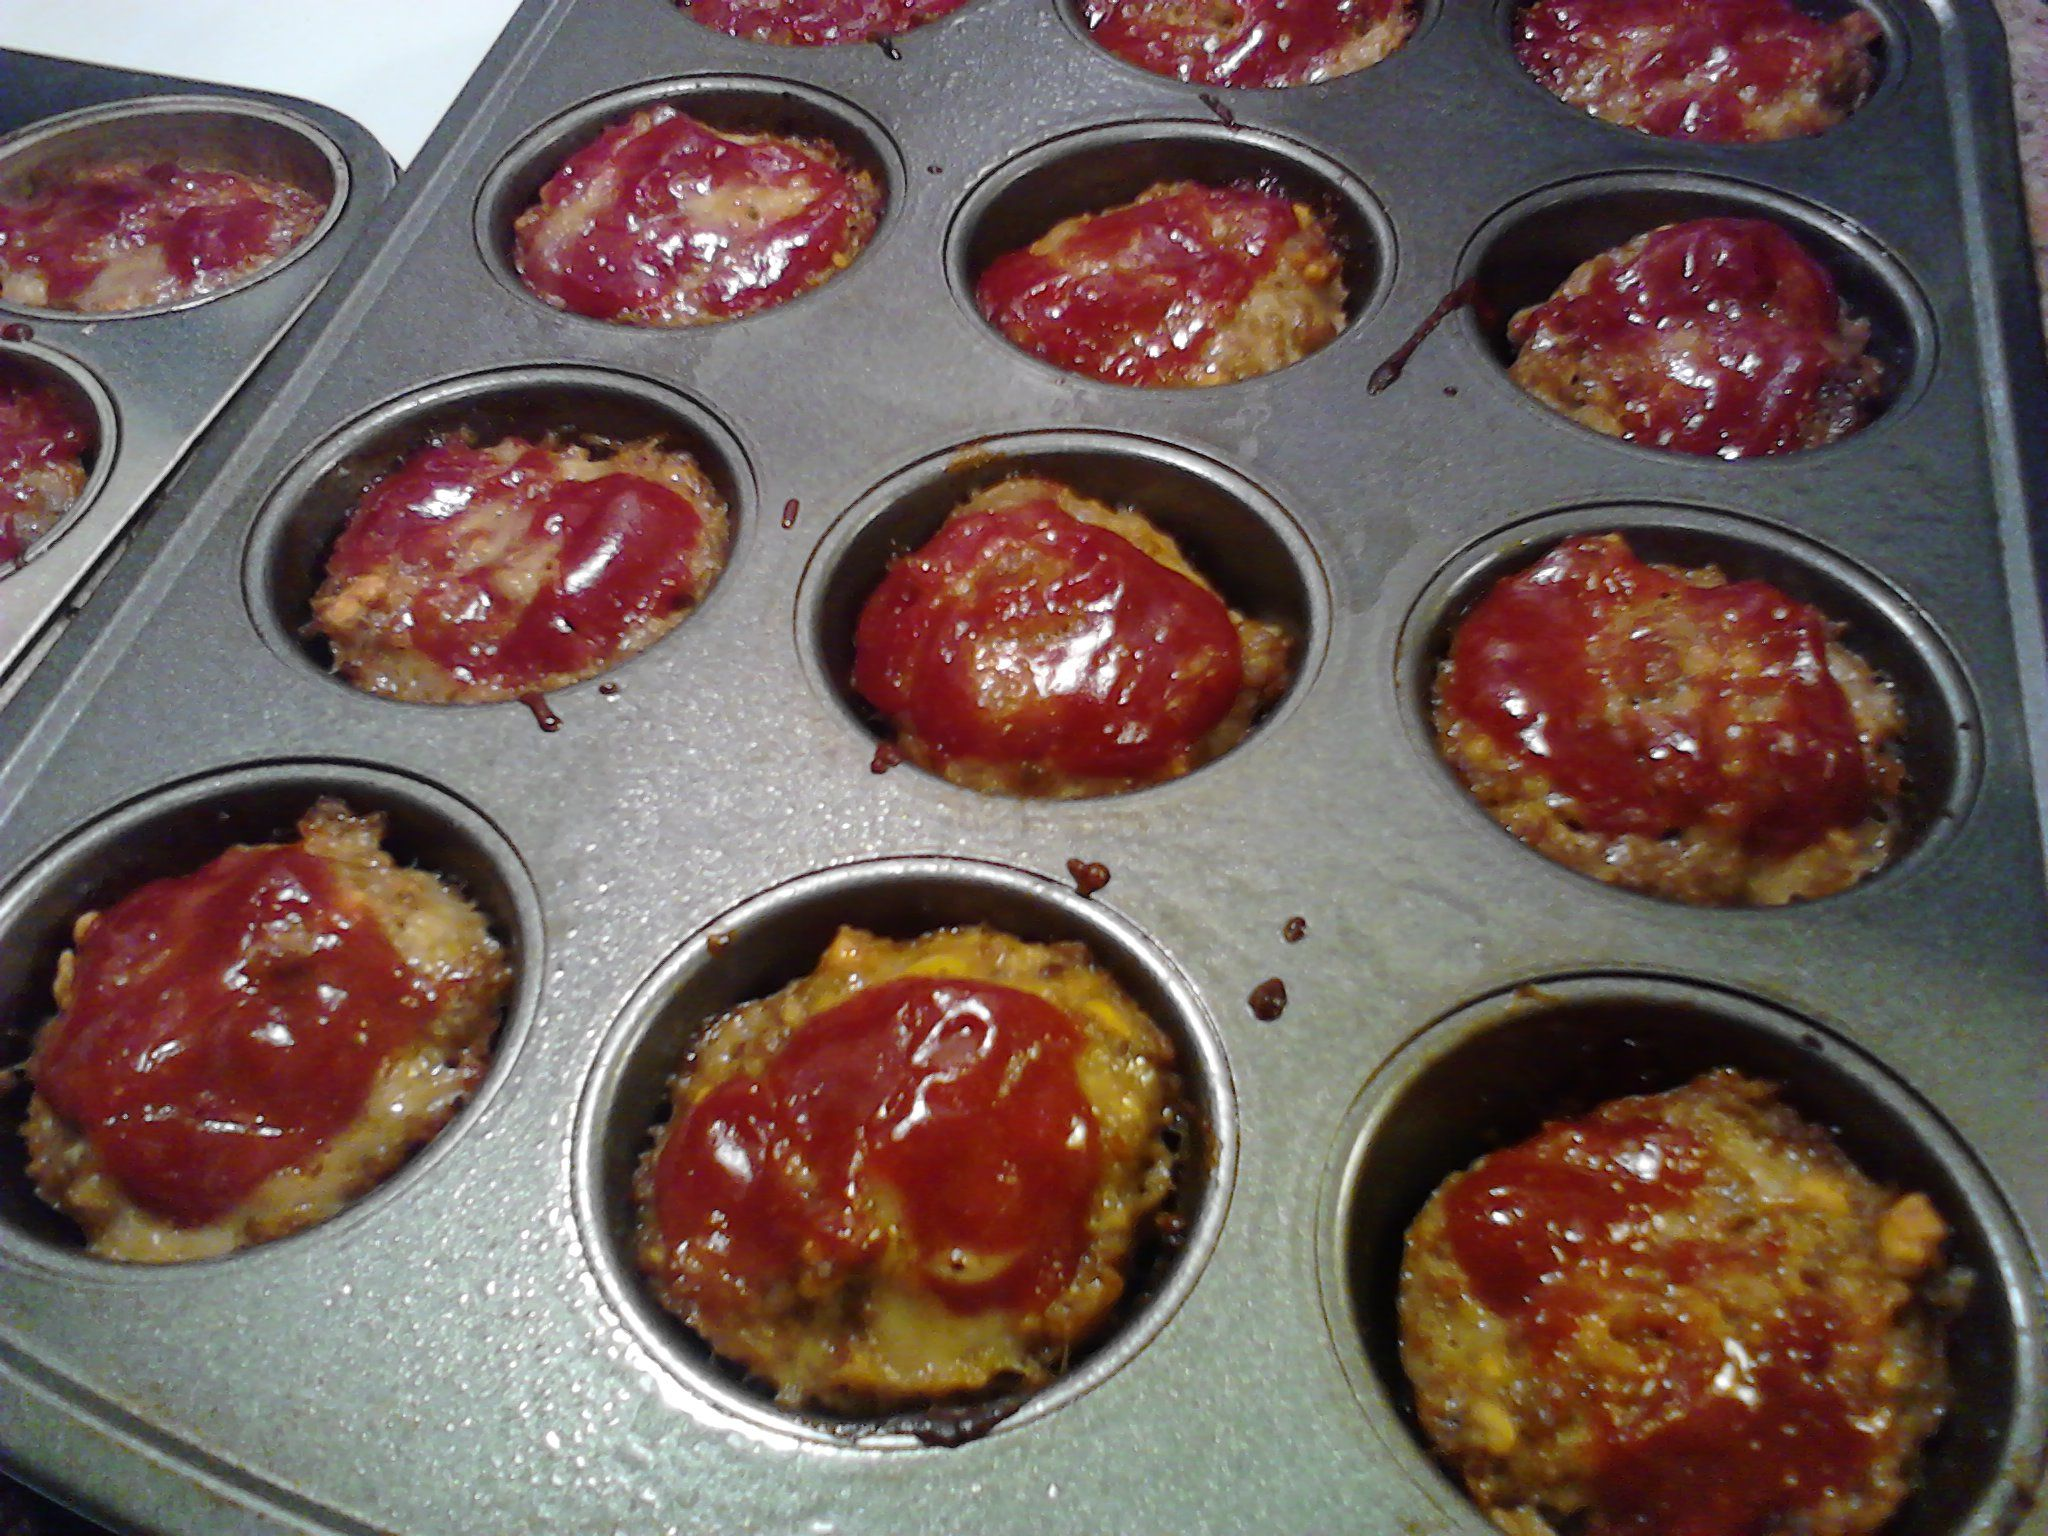 Mini Meatloaf Burgers Make Your Favorite Meatloaf Recipe Put Them Into A Muffin Pan To Bake Then Use Mi Mini Meatloaf Recipes Small Meatloaf Recipe Recipes